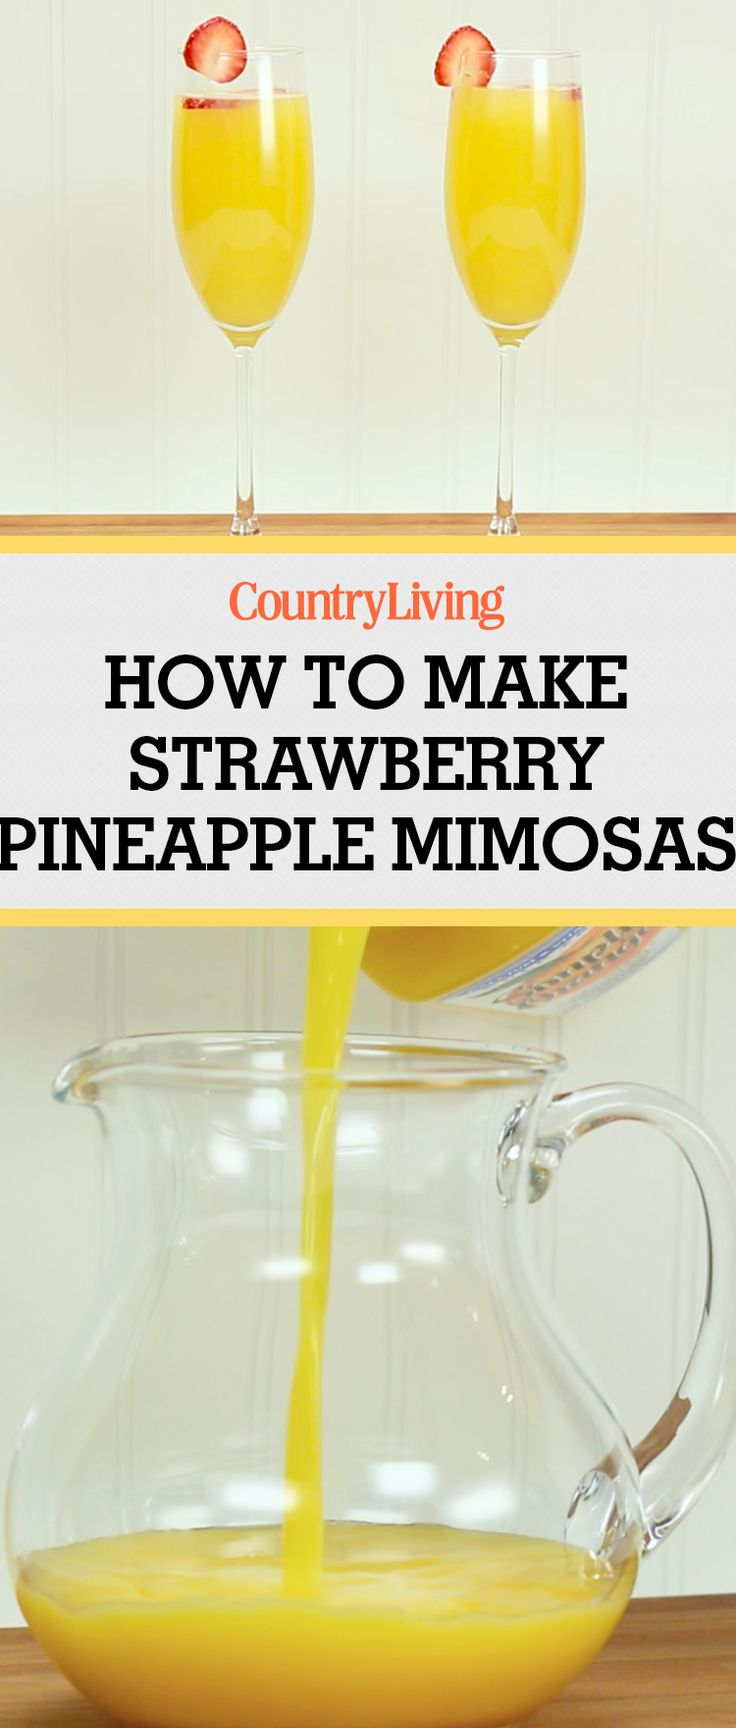 Strawberry Pineapple Mimosas are just what your brunch needs! These cocktails are so easy to make and delicious to drink! Cheers!